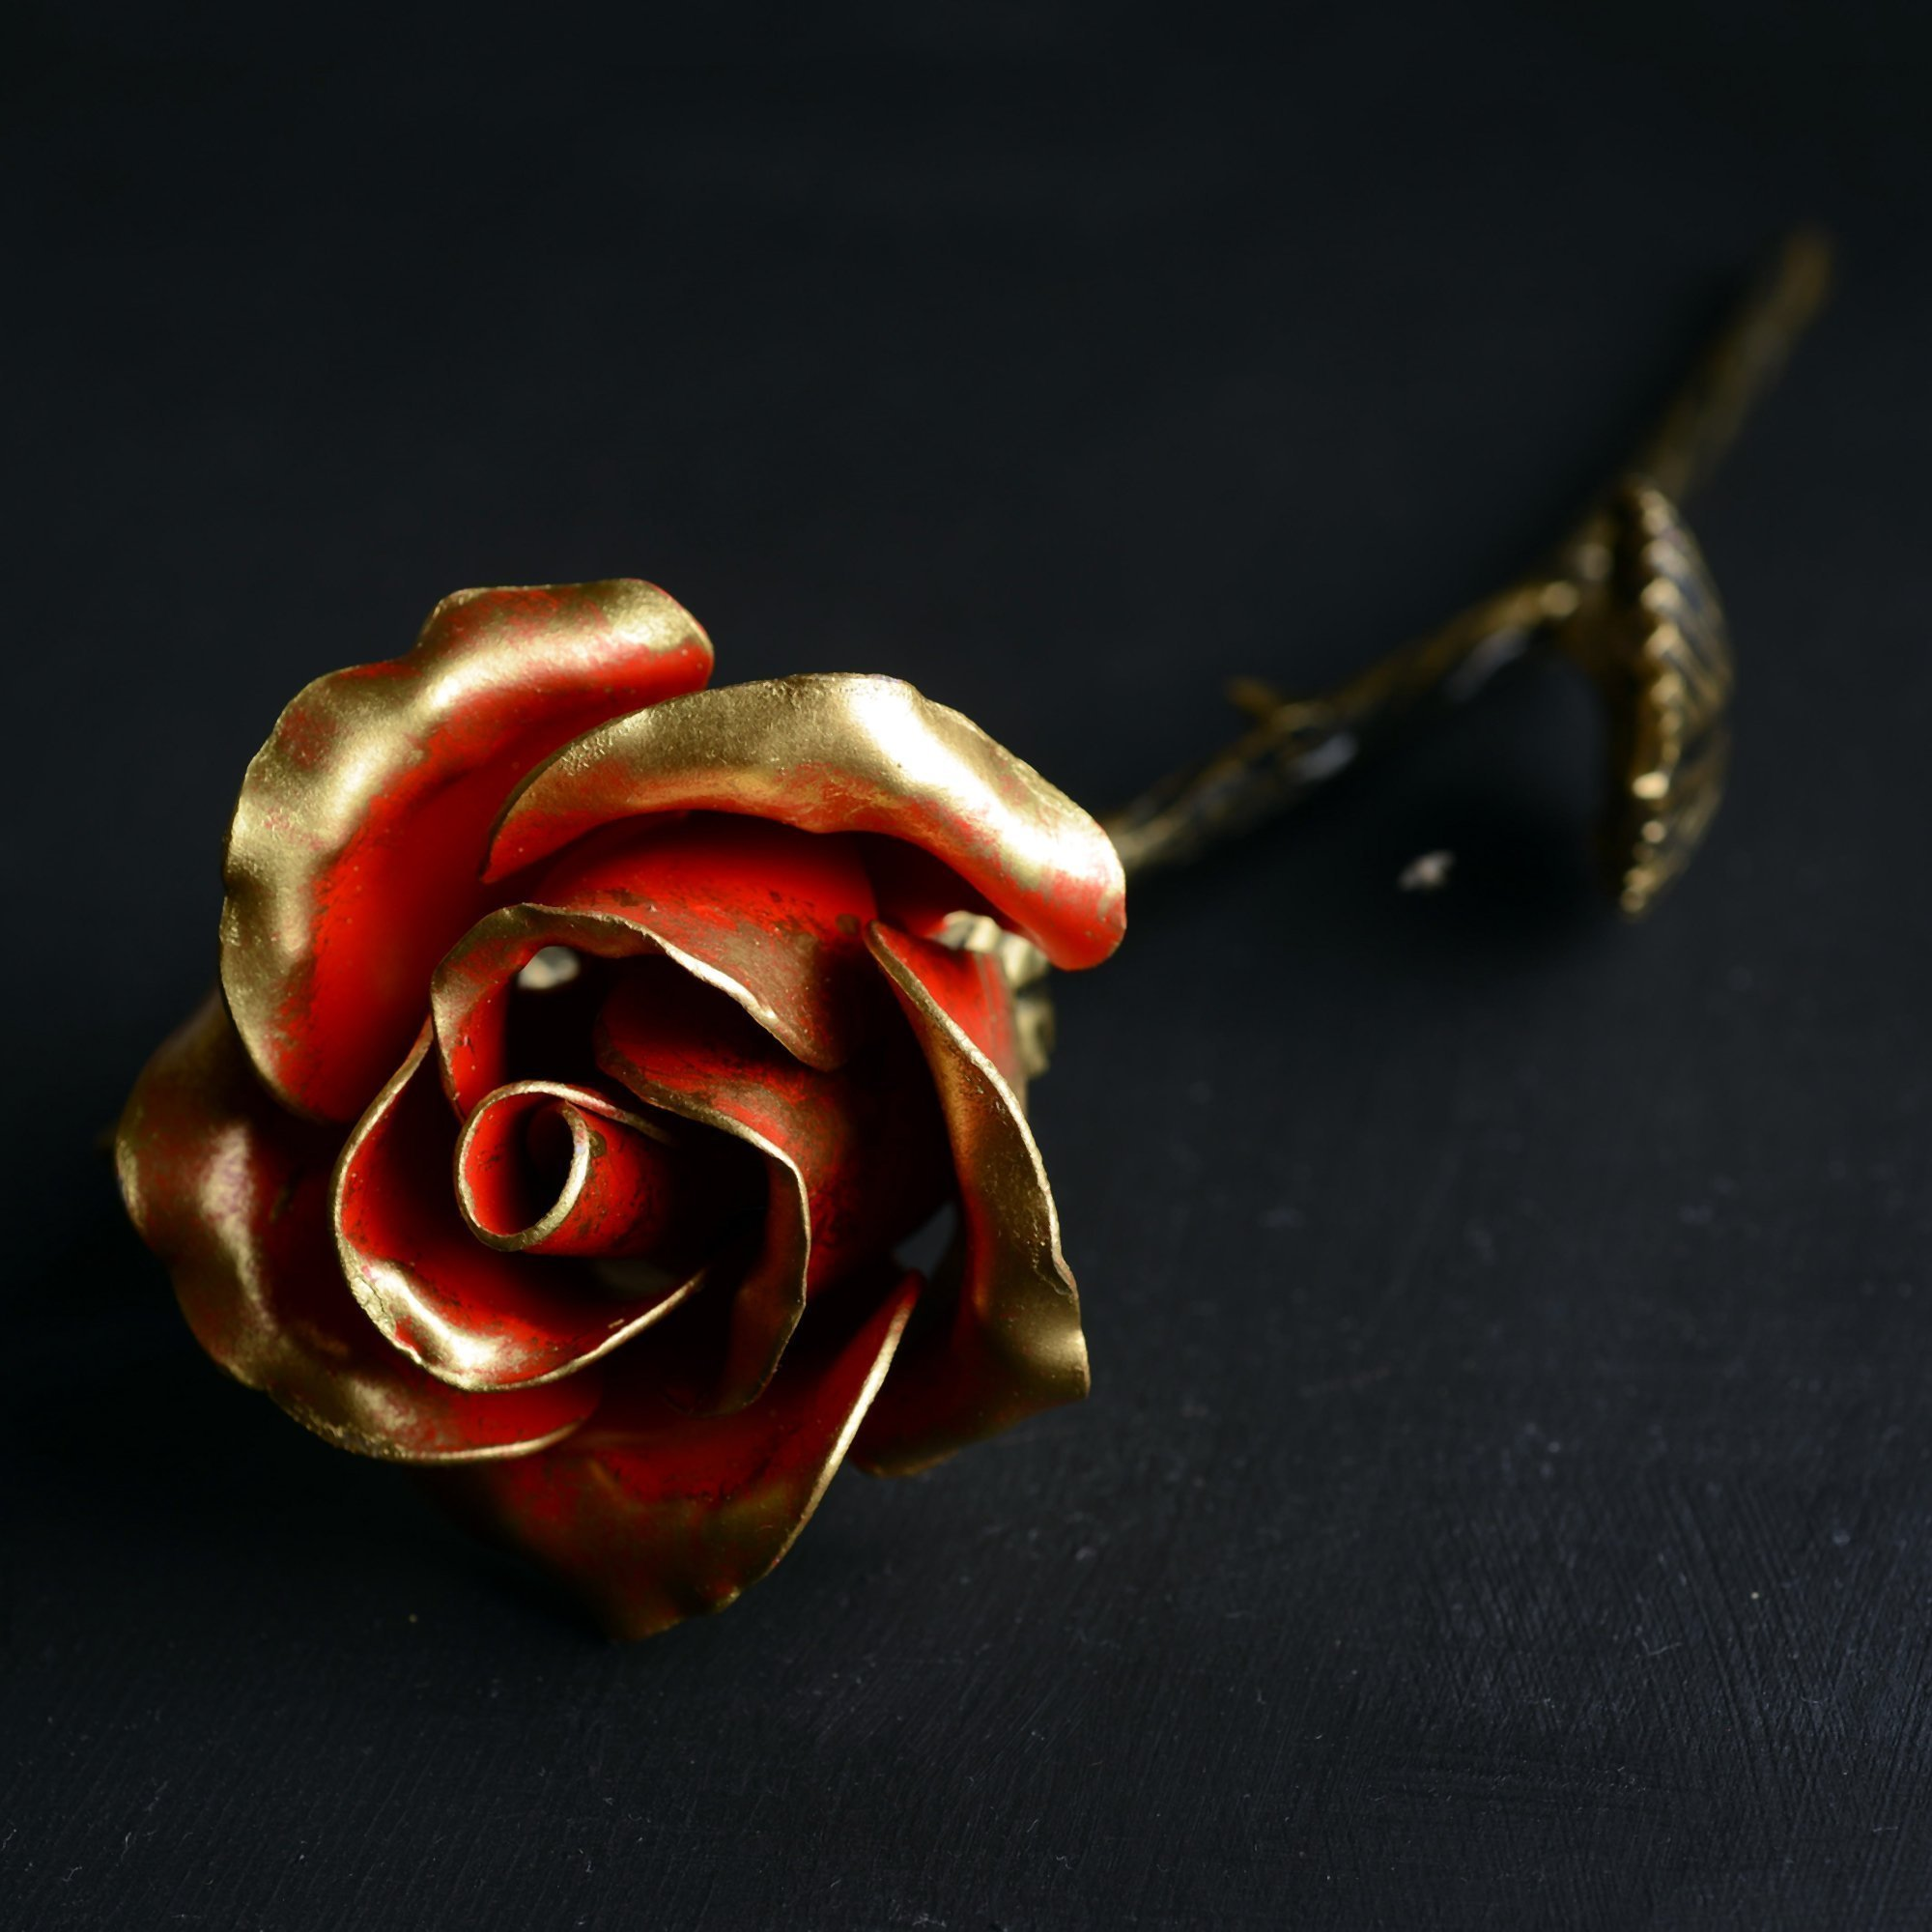 Hand Forged Iron Rose - 11th / 6th Year Wedding Anniversary Gift for Her/Red Metal Rose Steel Rose by MetalArt (Image #2)